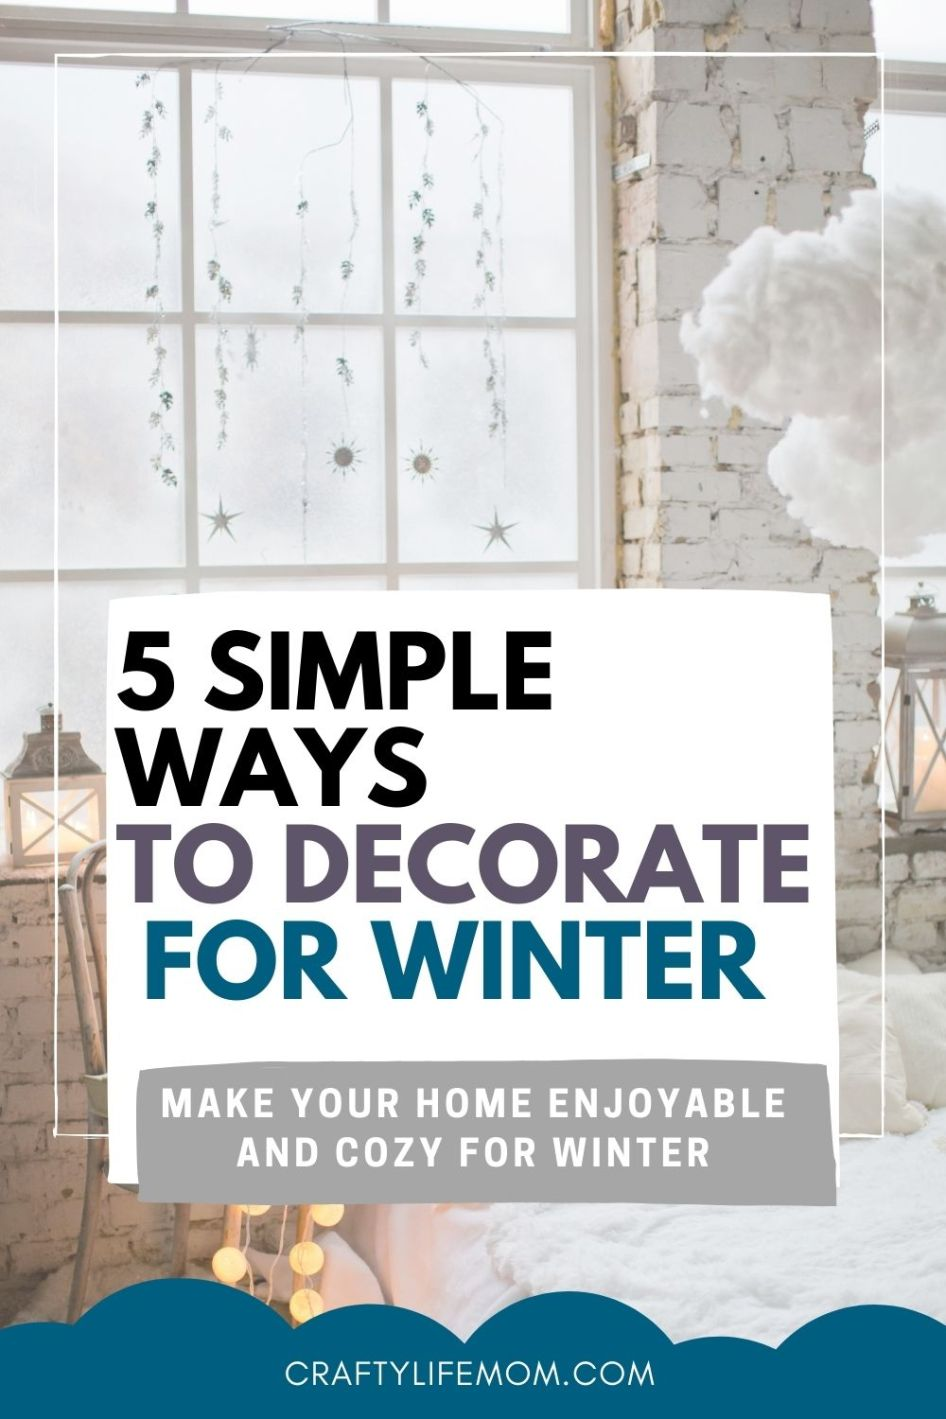 Decorate your home for Winter without Christmas decor and still have a fun cozy winter vibe in your home with these five easy tips and ideas. Make your home enjoyable and cozy for the winter months with these simple tricks.